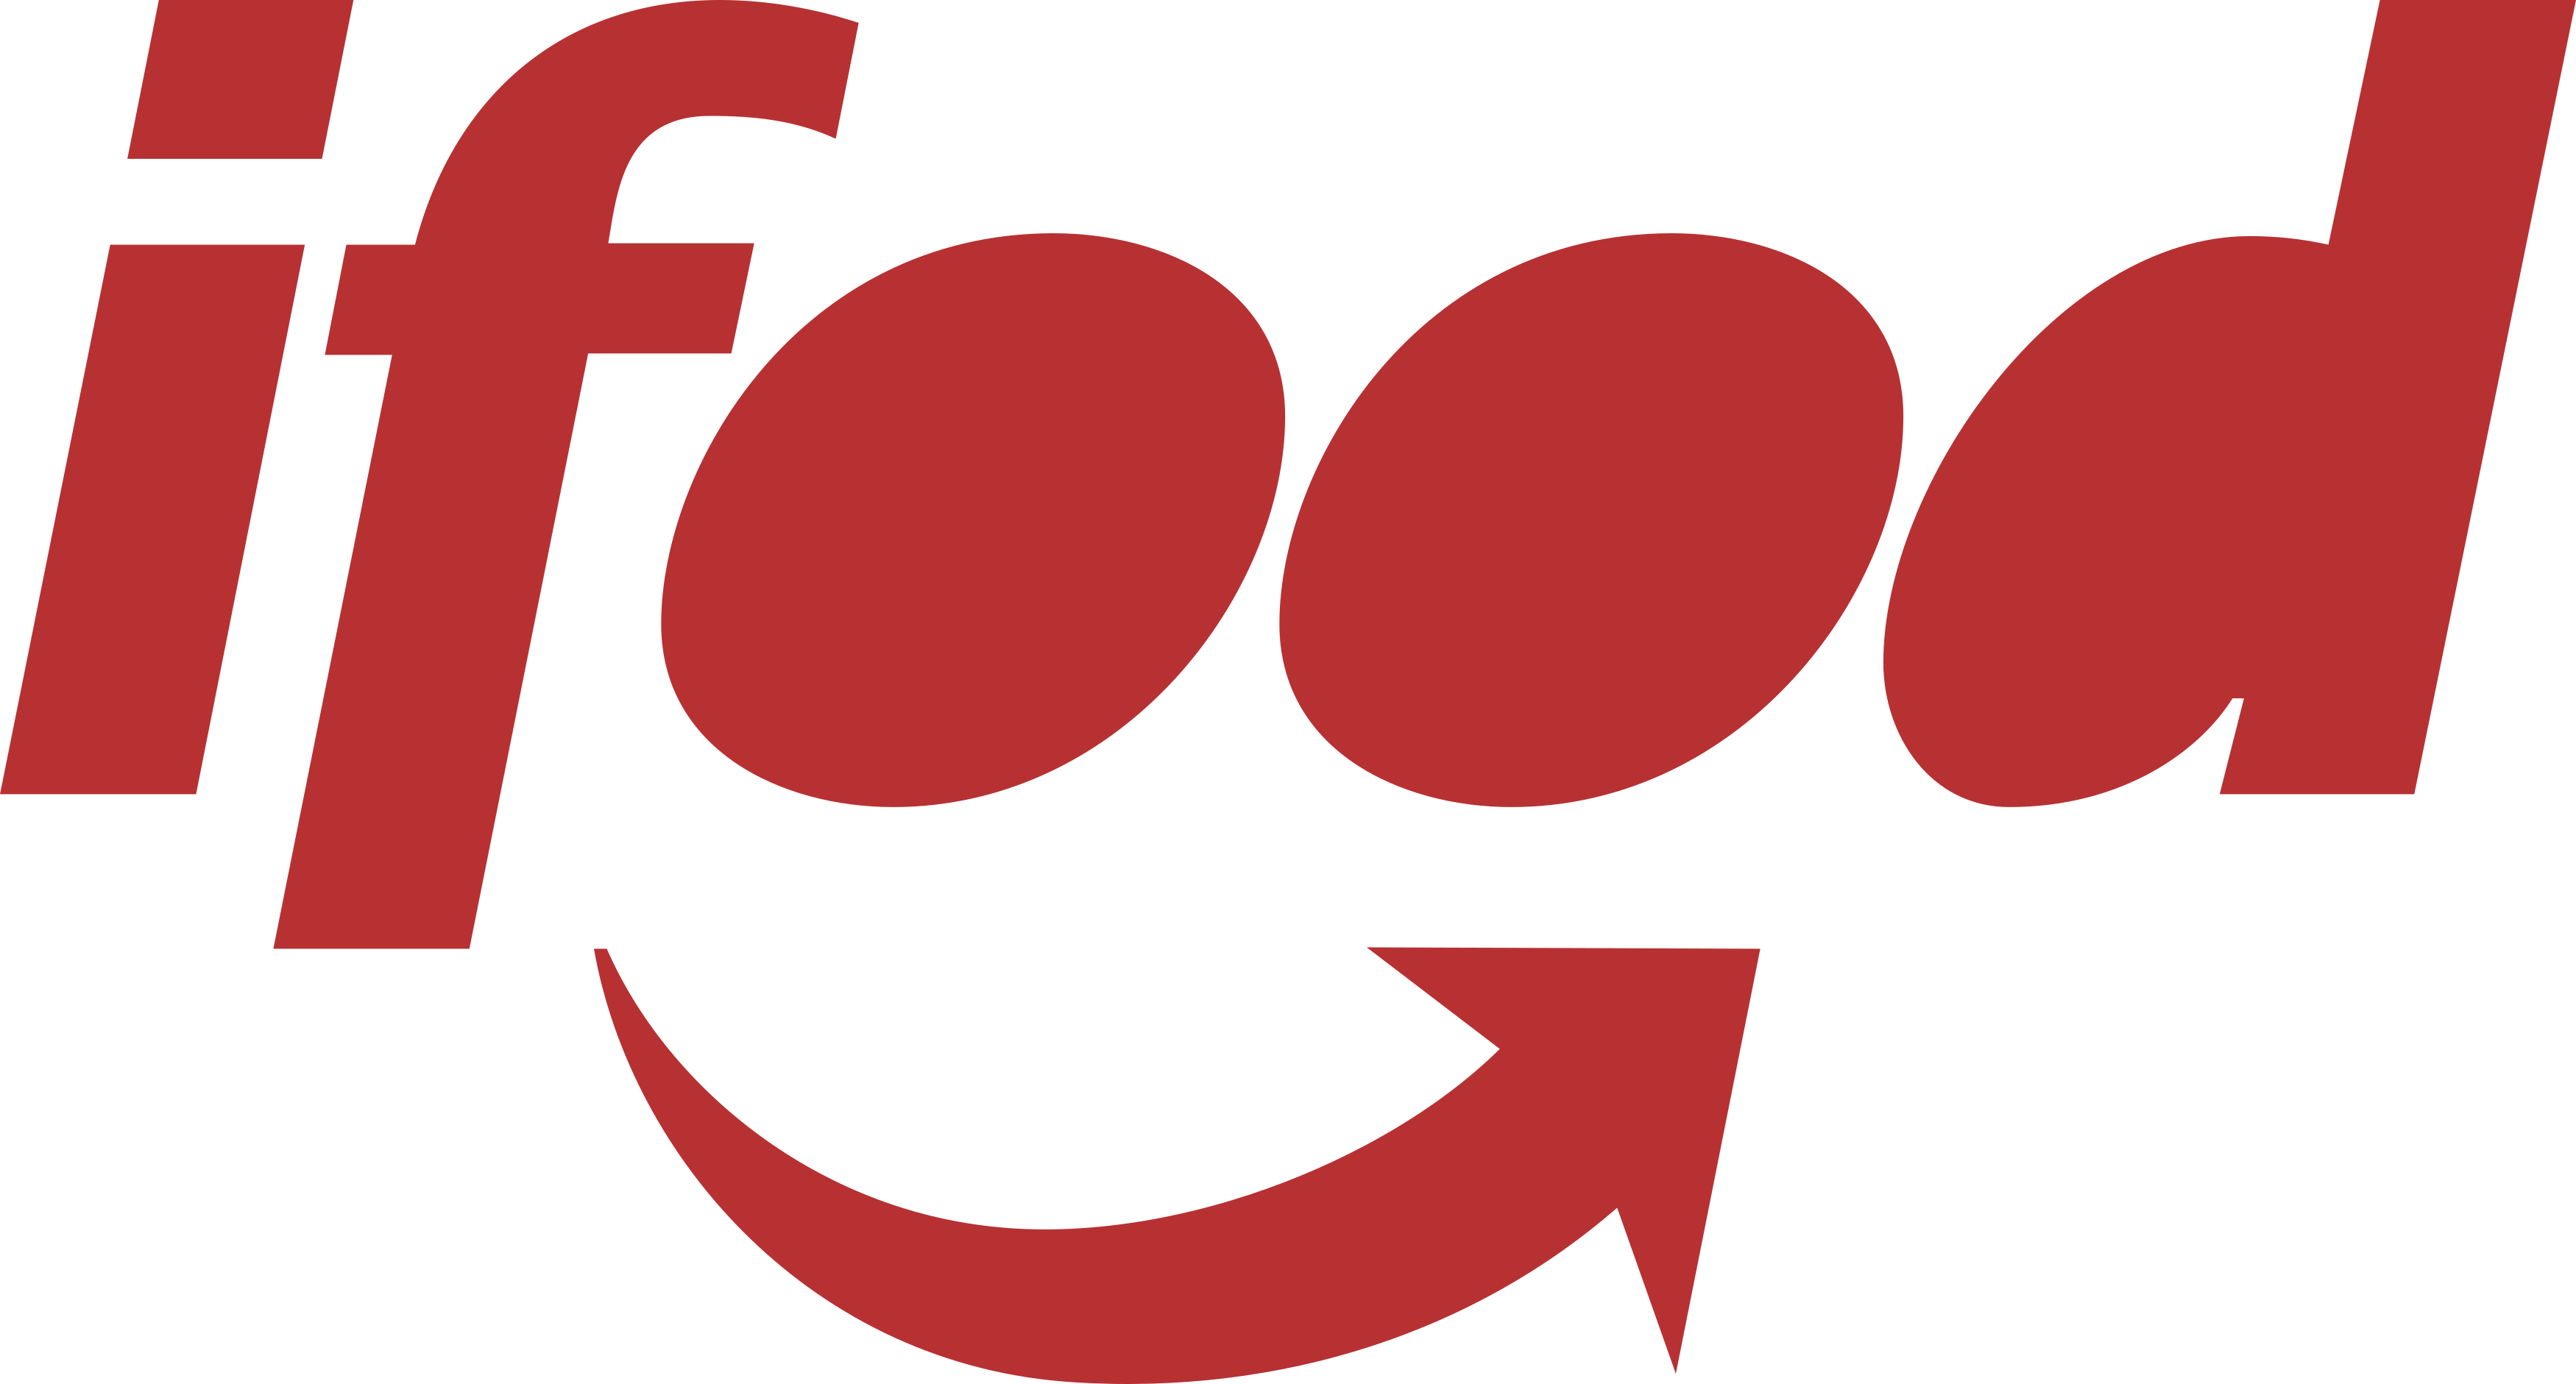 ifood logo - ifood Logo